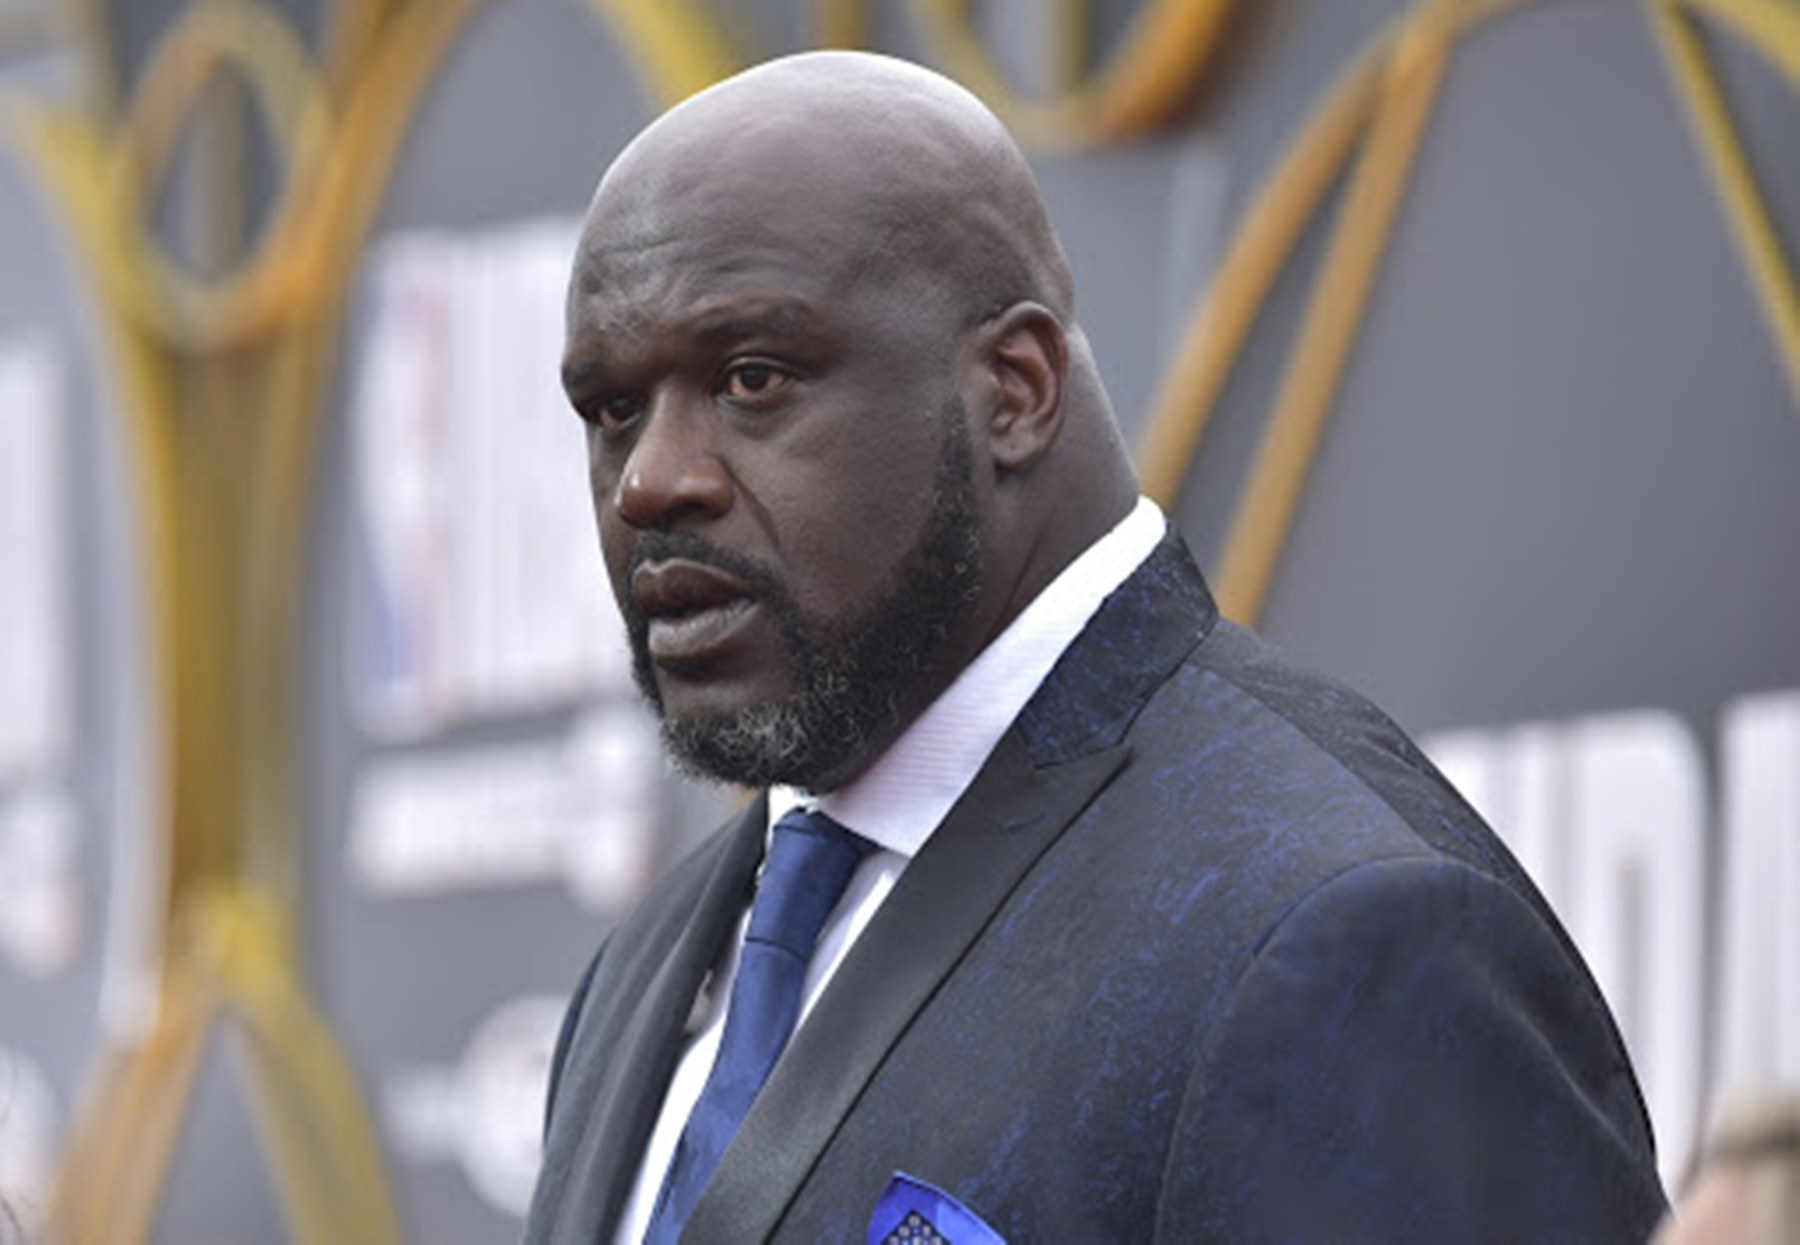 Shaquille O'Neal Daughter Taahirah Graduates, Going To Law School